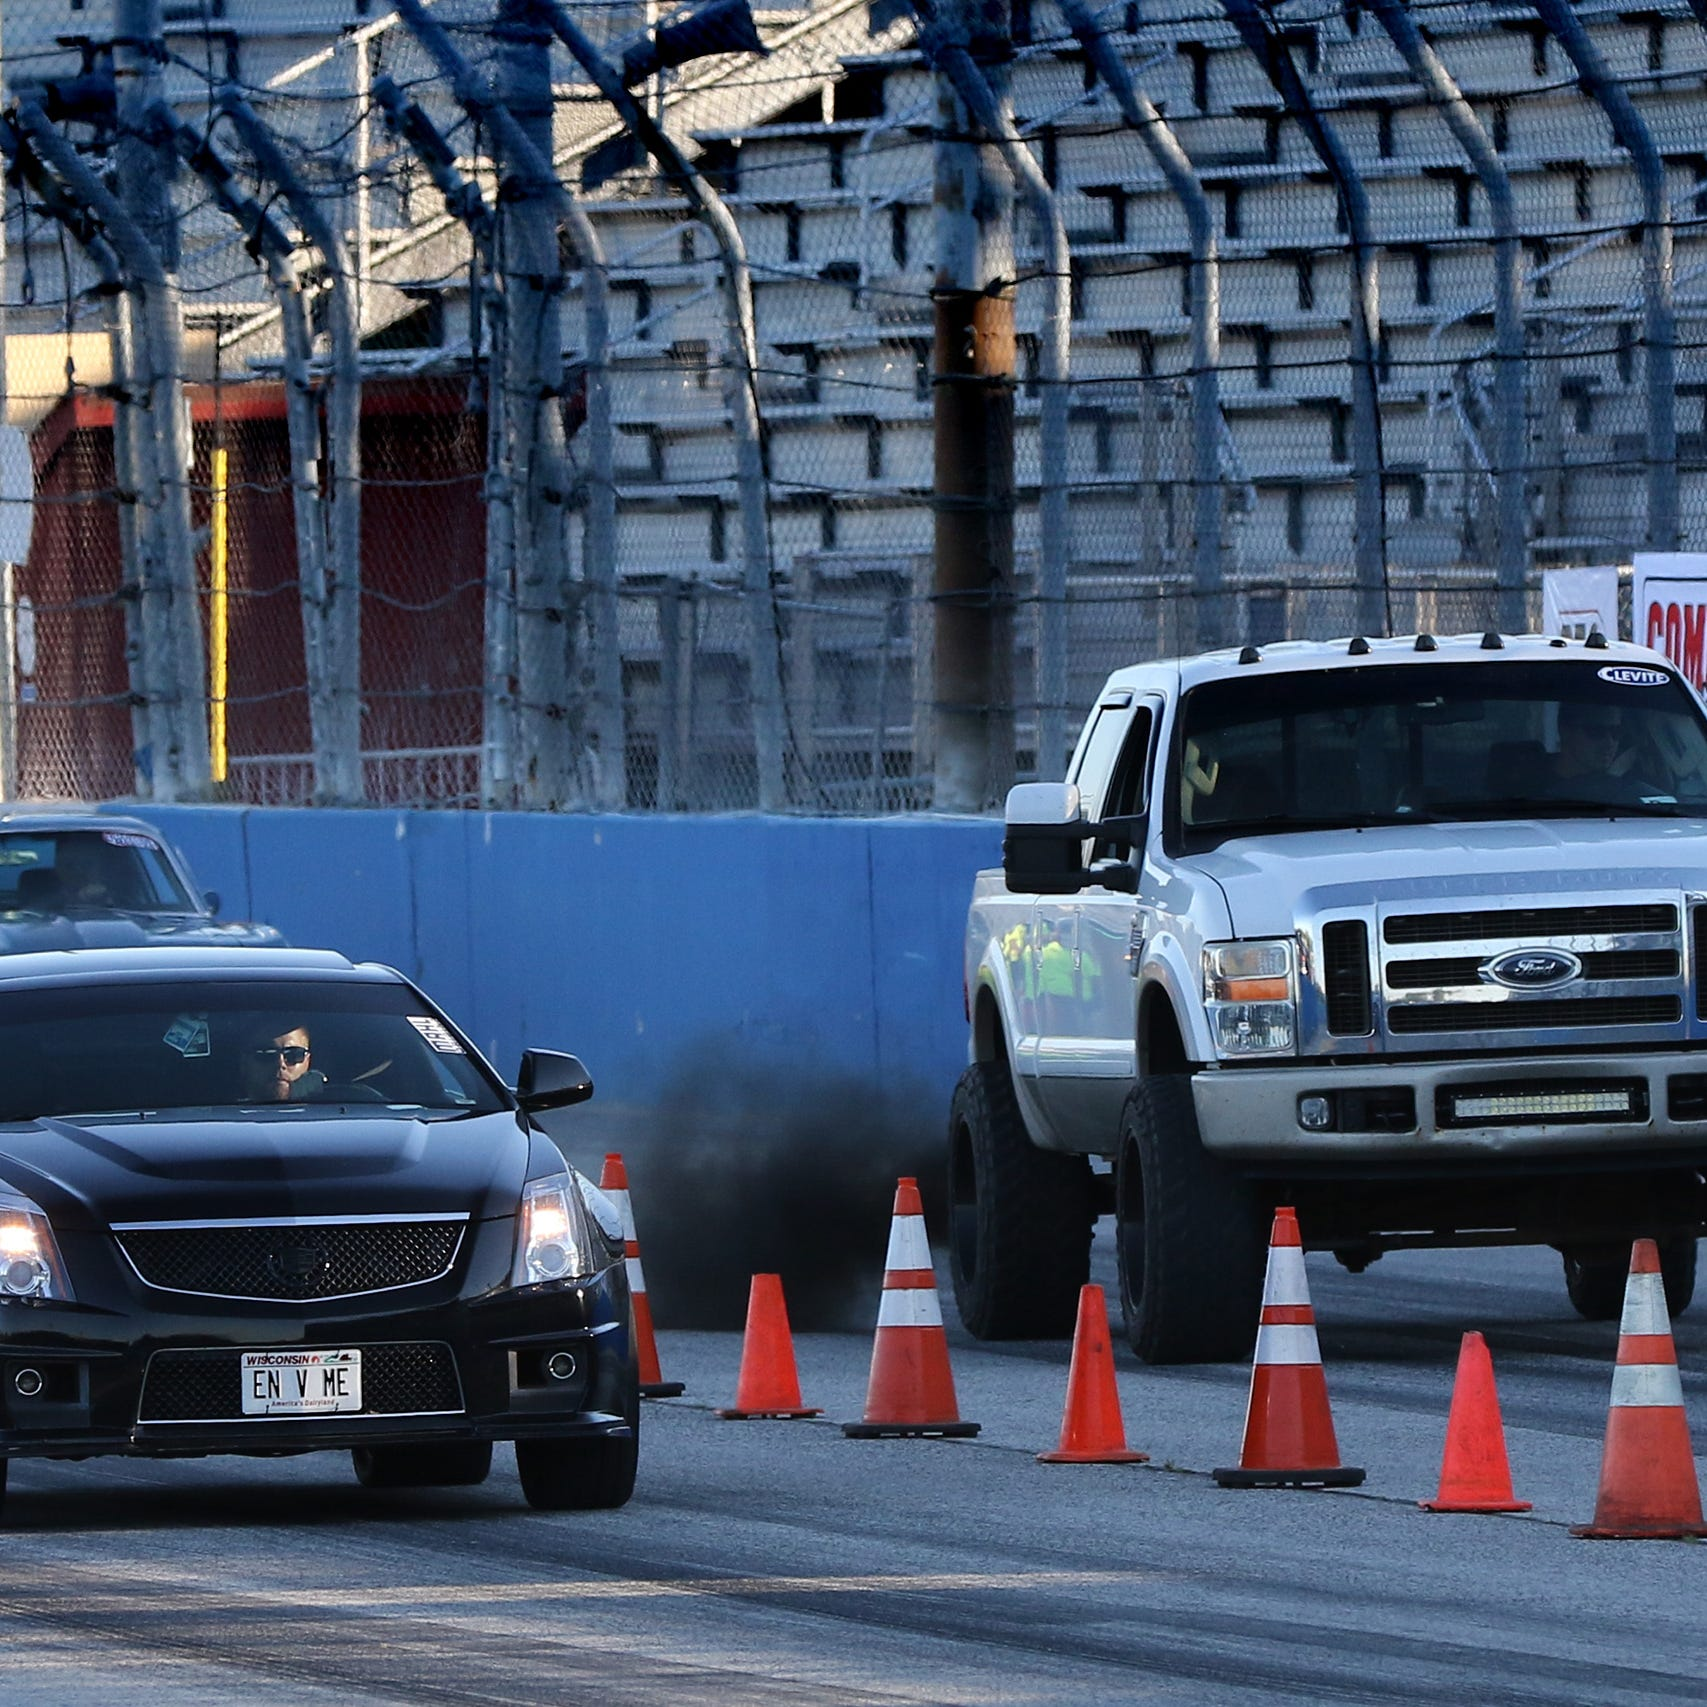 Promoters push legitimate drag racing while Milwaukee fights a problem on its streets